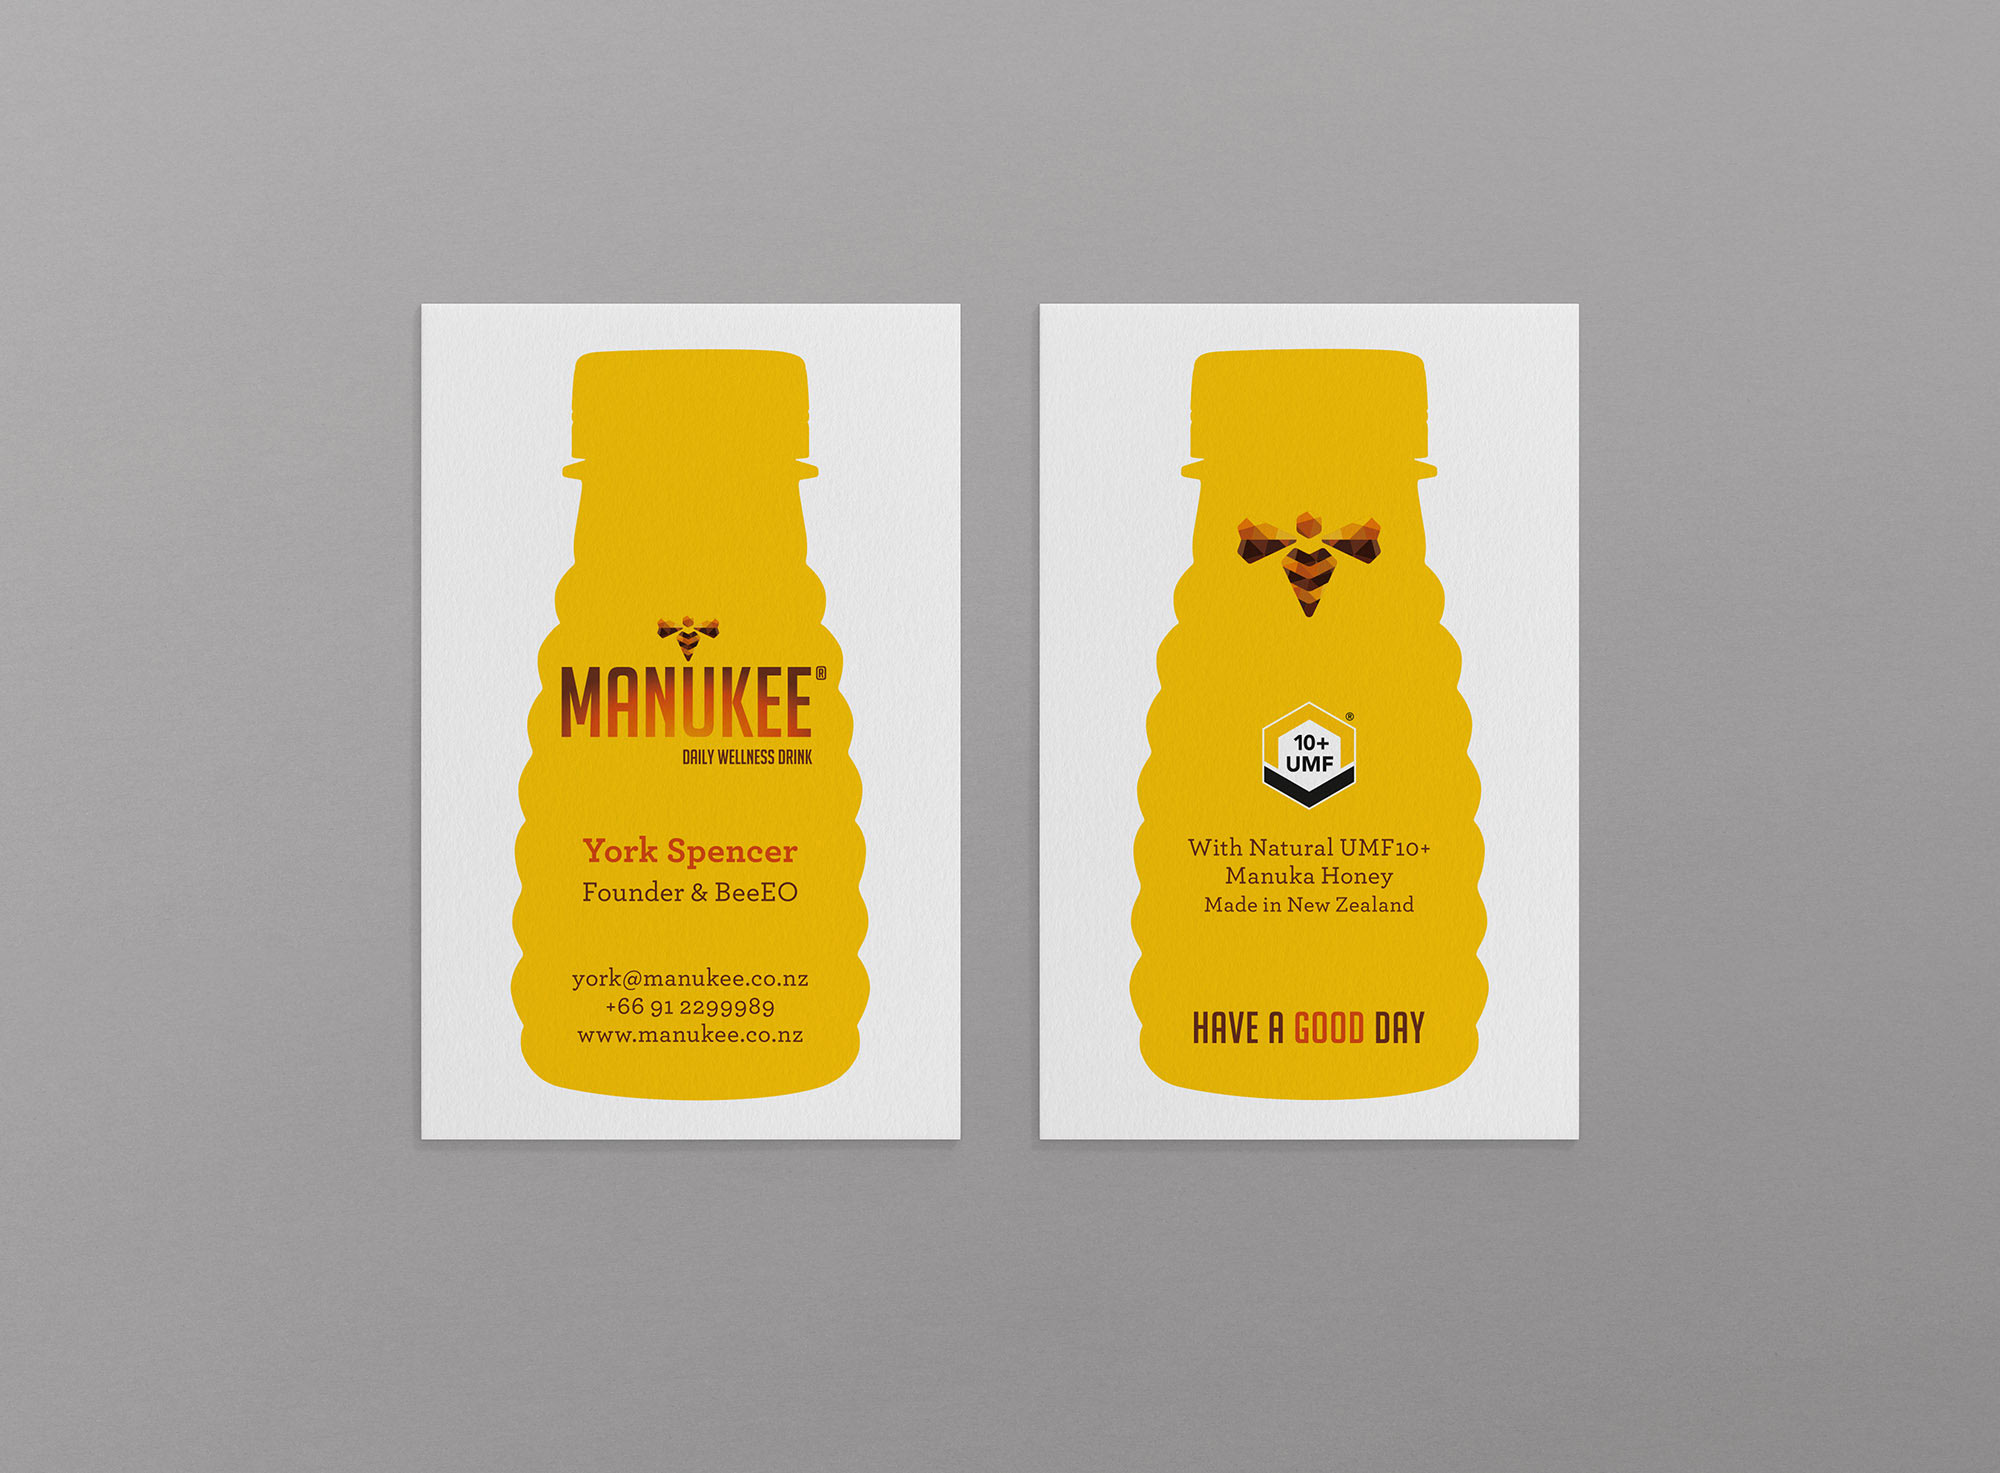 Manukee Honey Business Card Design